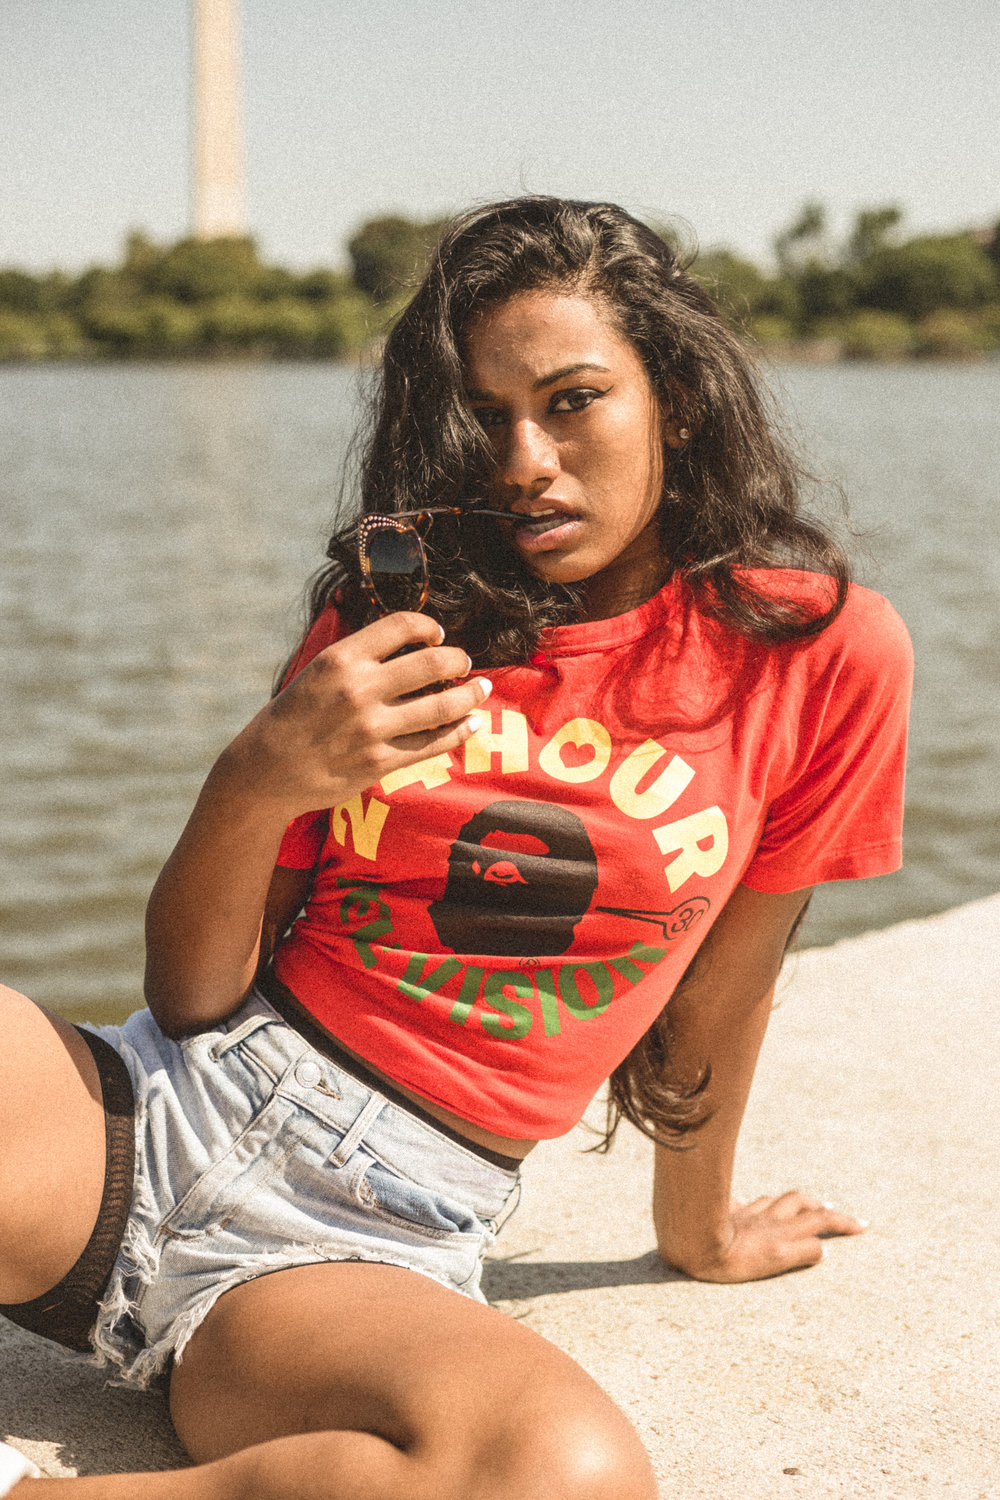 Archives by 1600 - Lookbook Shots